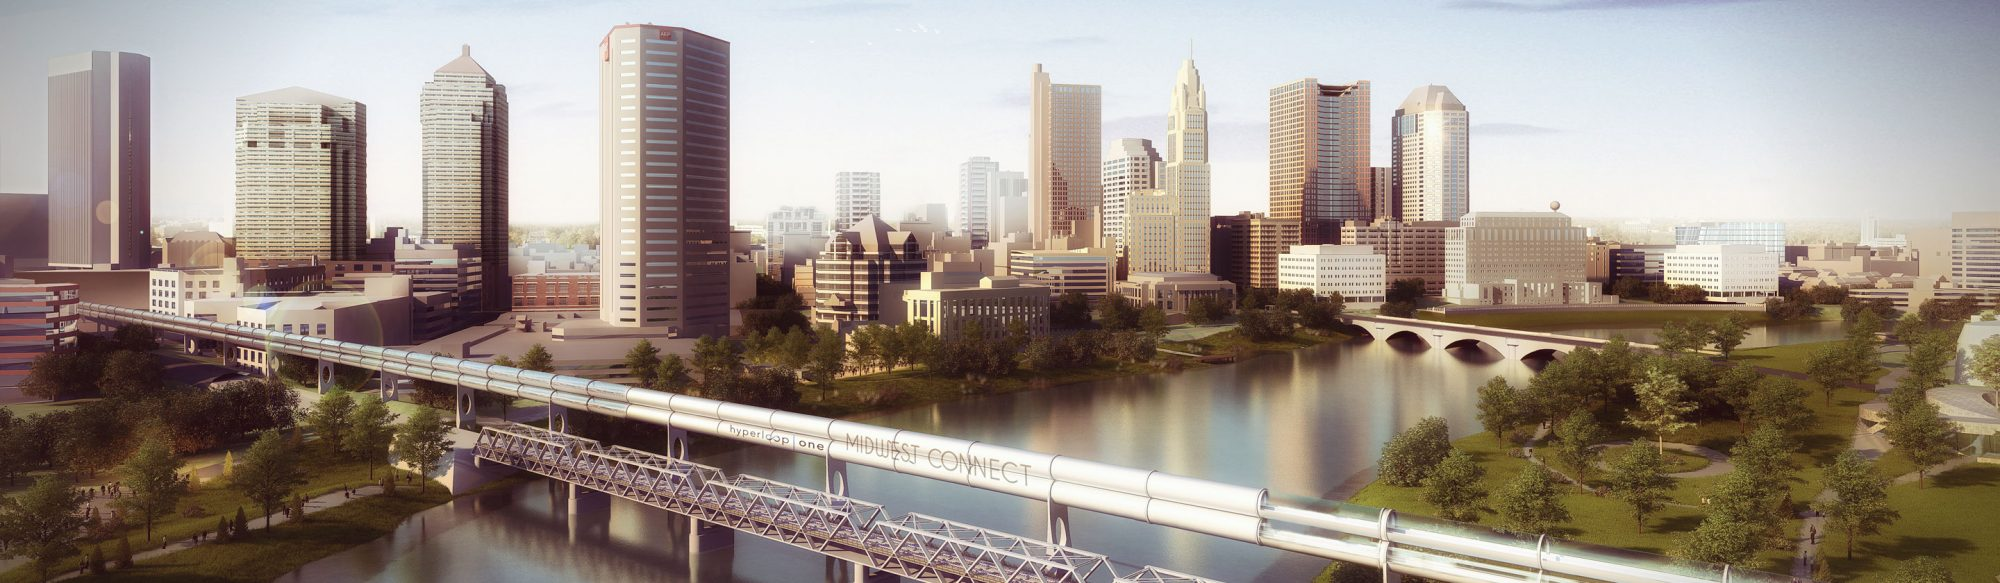 Hyperloop Midwest Connect Initiative